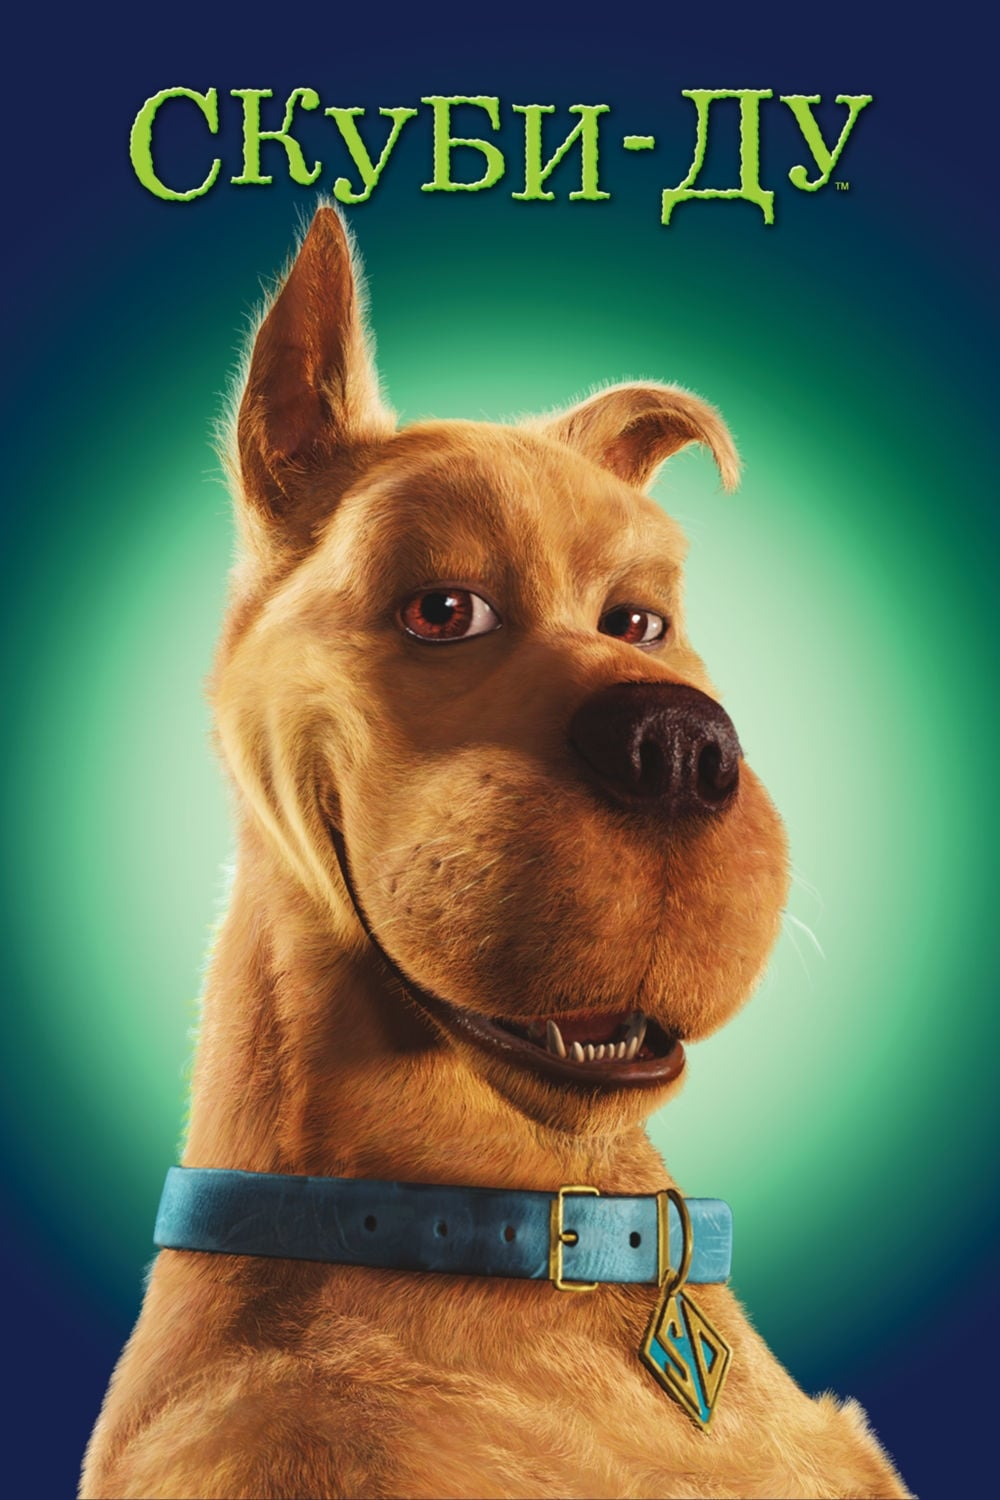 scooby doo movie thesis Precision and personalization our scooby doo experts can research and write a new, one-of-a-kind, original dissertation, thesis, or research proposal—just for you—on the precise scooby doo topic of your choice.